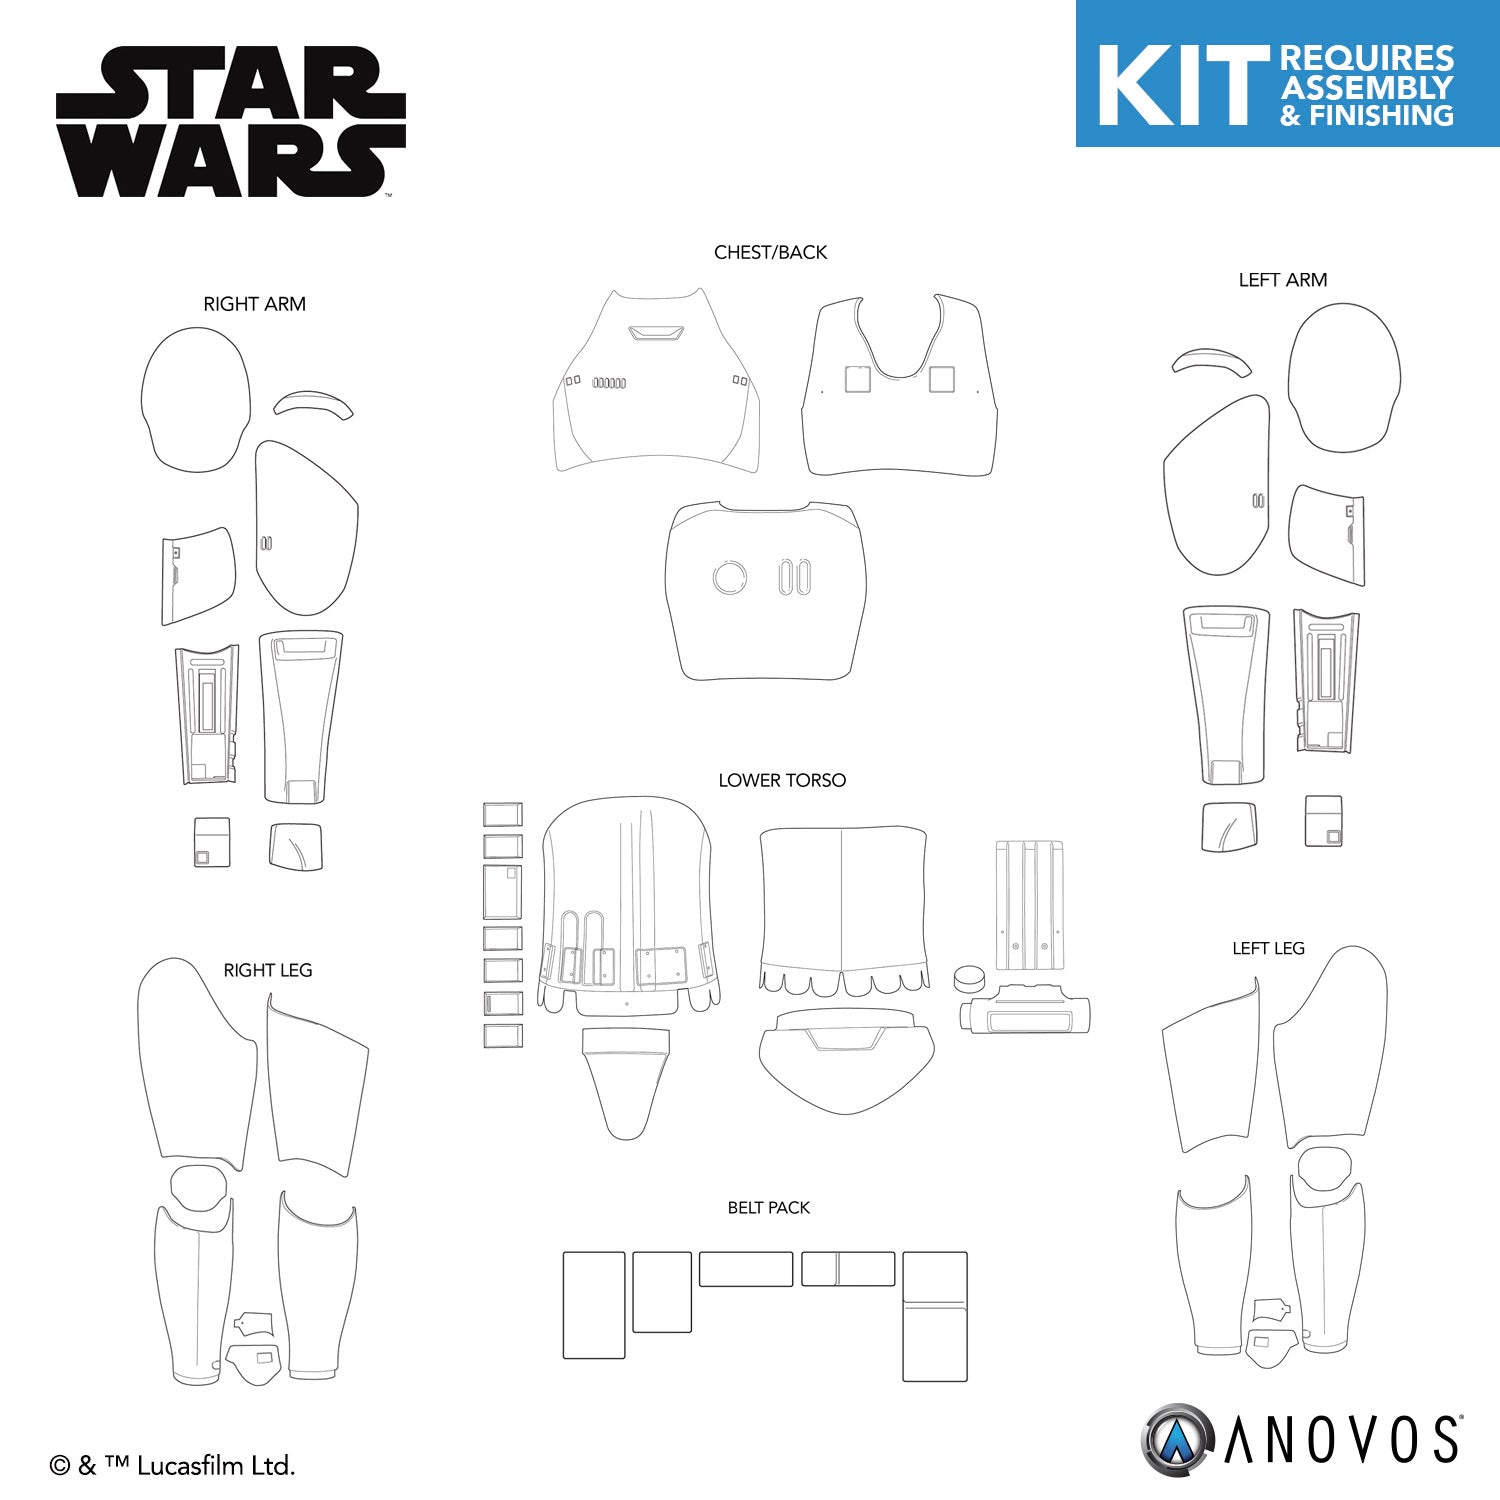 STAR WARS™ First Order Stormtrooper Armor Kit Replacement